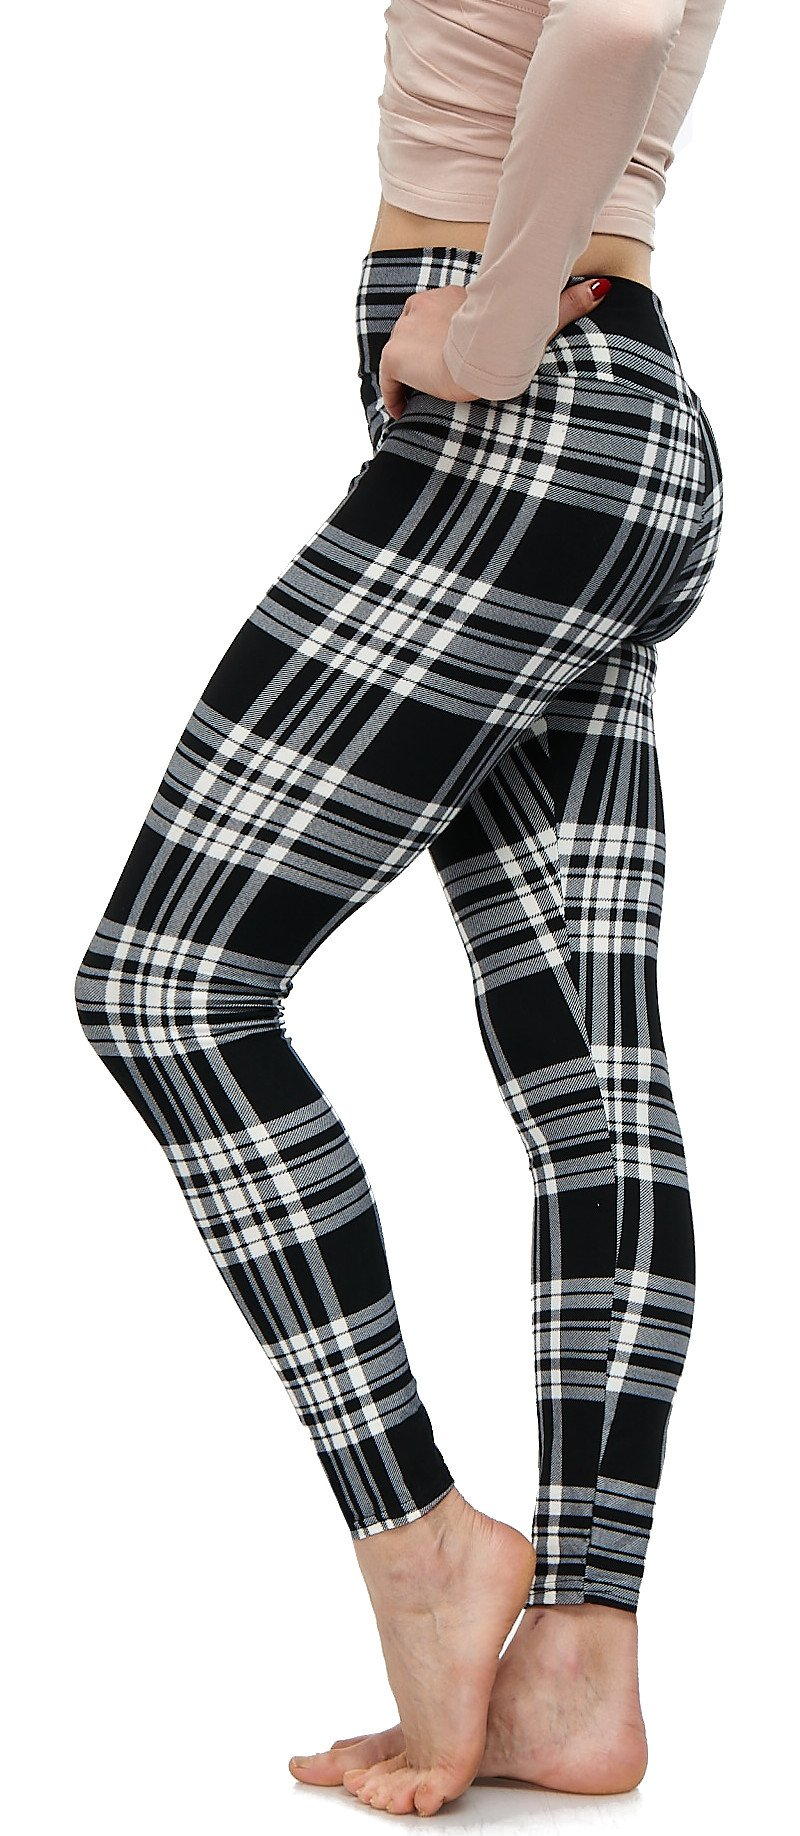 LMB Lush Moda Extra Soft Leggings with Designs- Variety of Prints Yoga Waist - 769YF Black White Plaid B5 by LMB (Image #9)